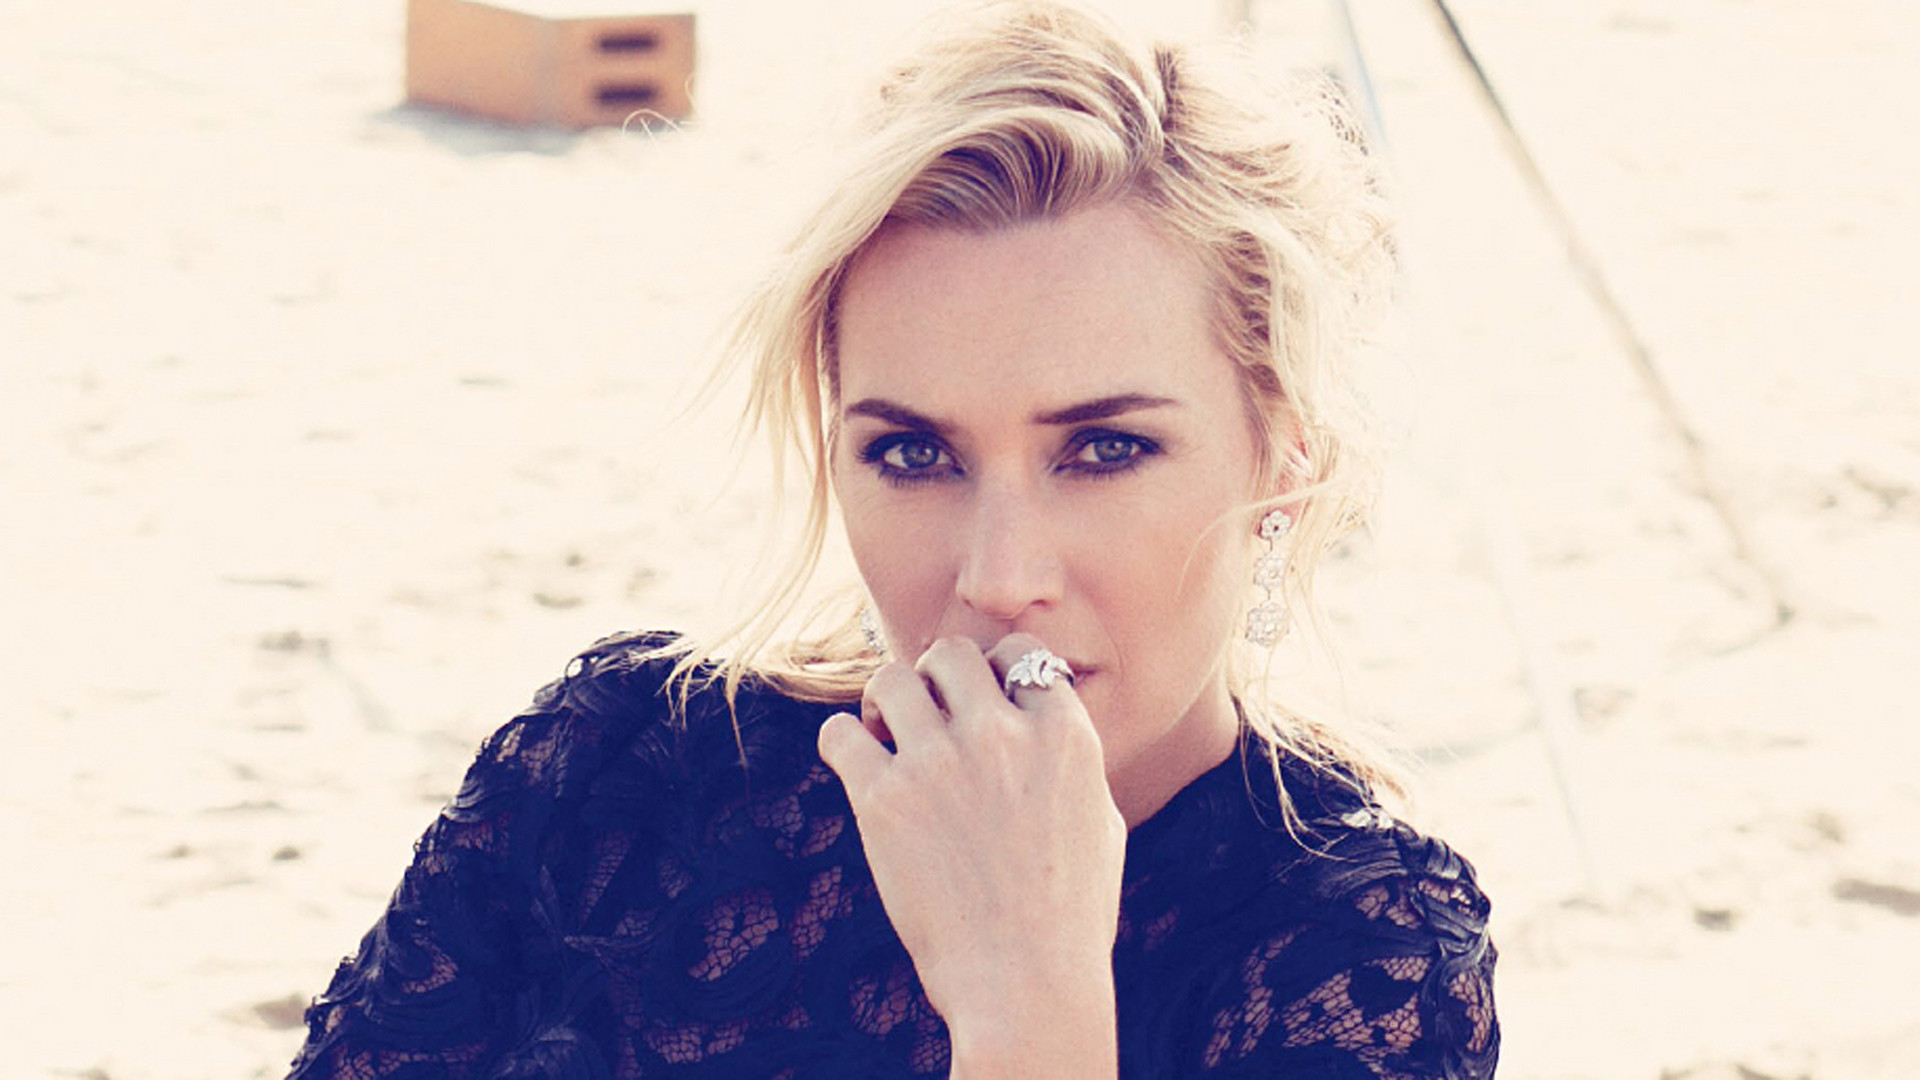 Kate Winslet Wallpapers High Quality Download Free   Wallpapers 4k    Pinterest